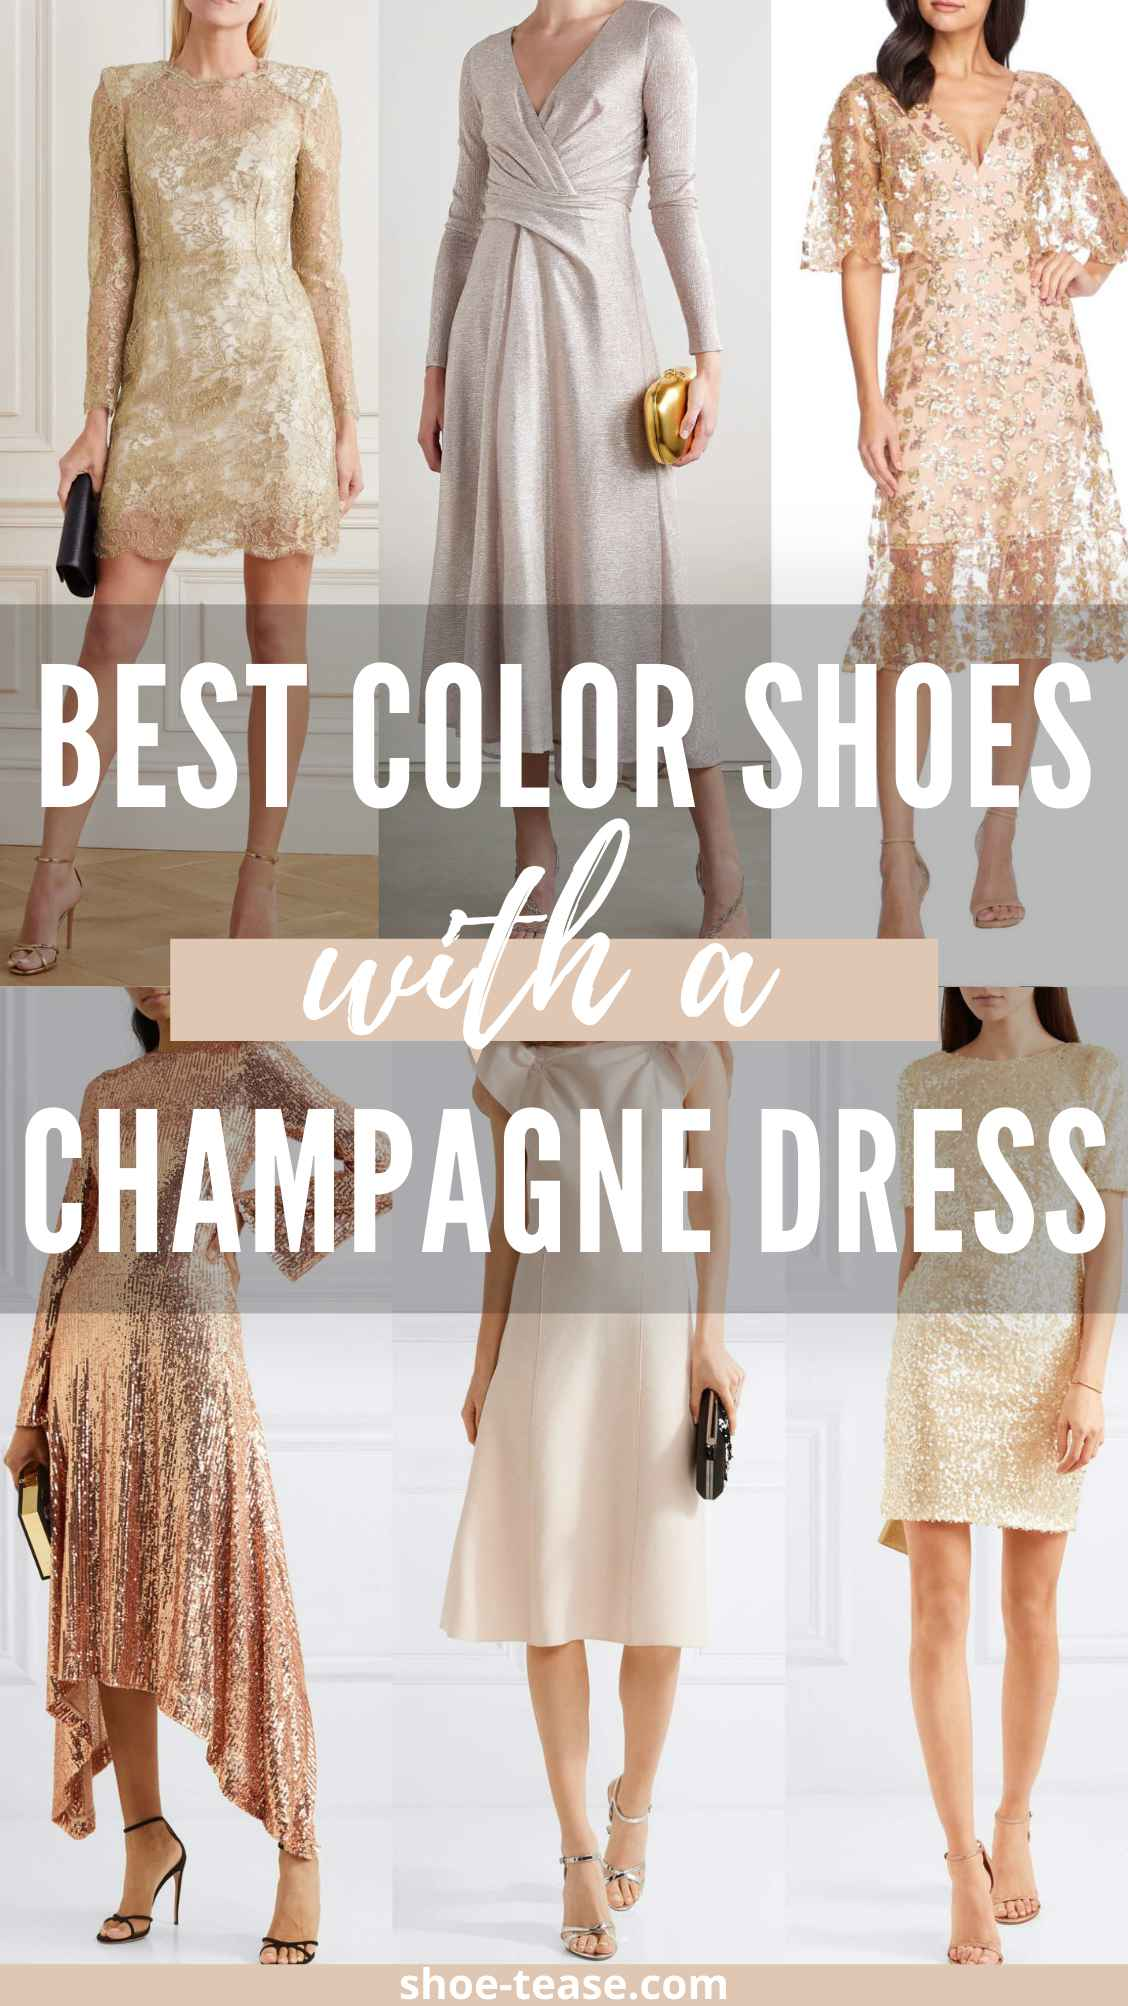 6 women wearing beige color shoes with champagne dresses